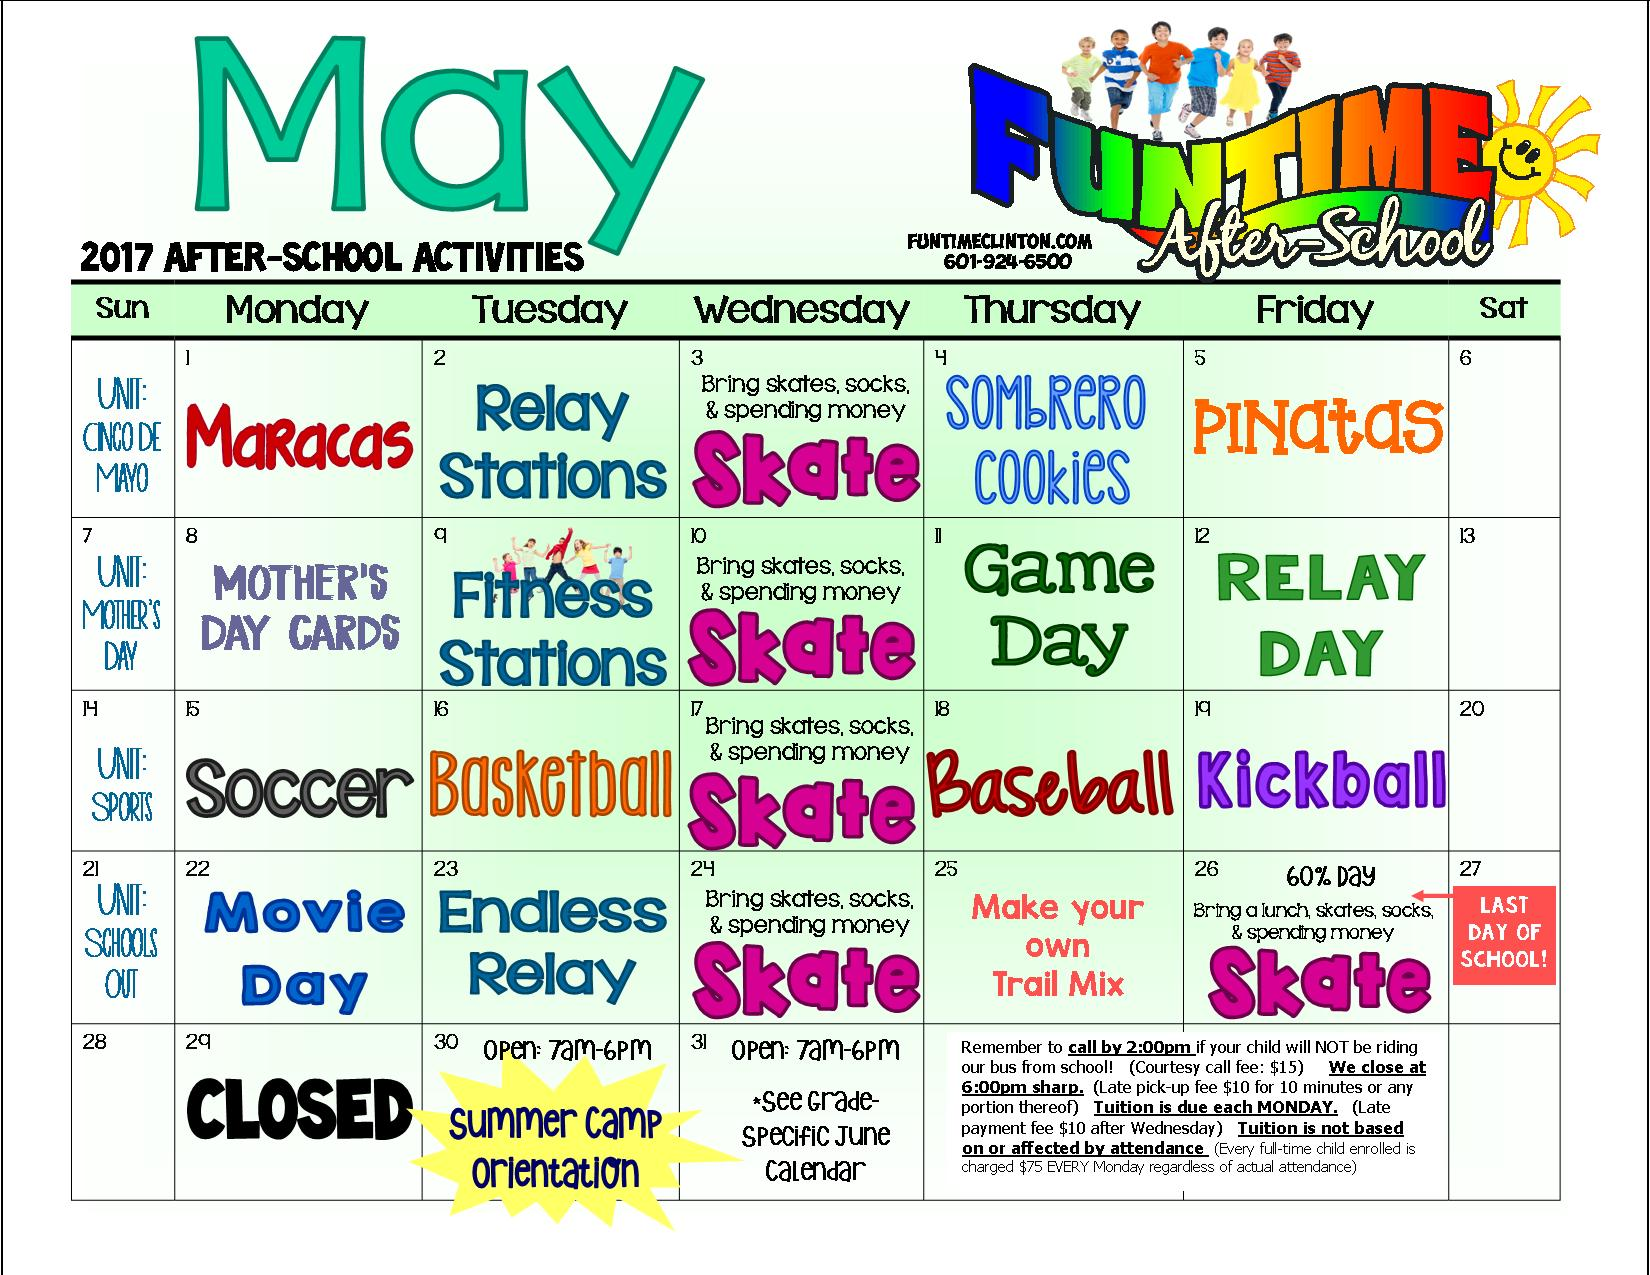 May 17 - AFTERSCHOOL